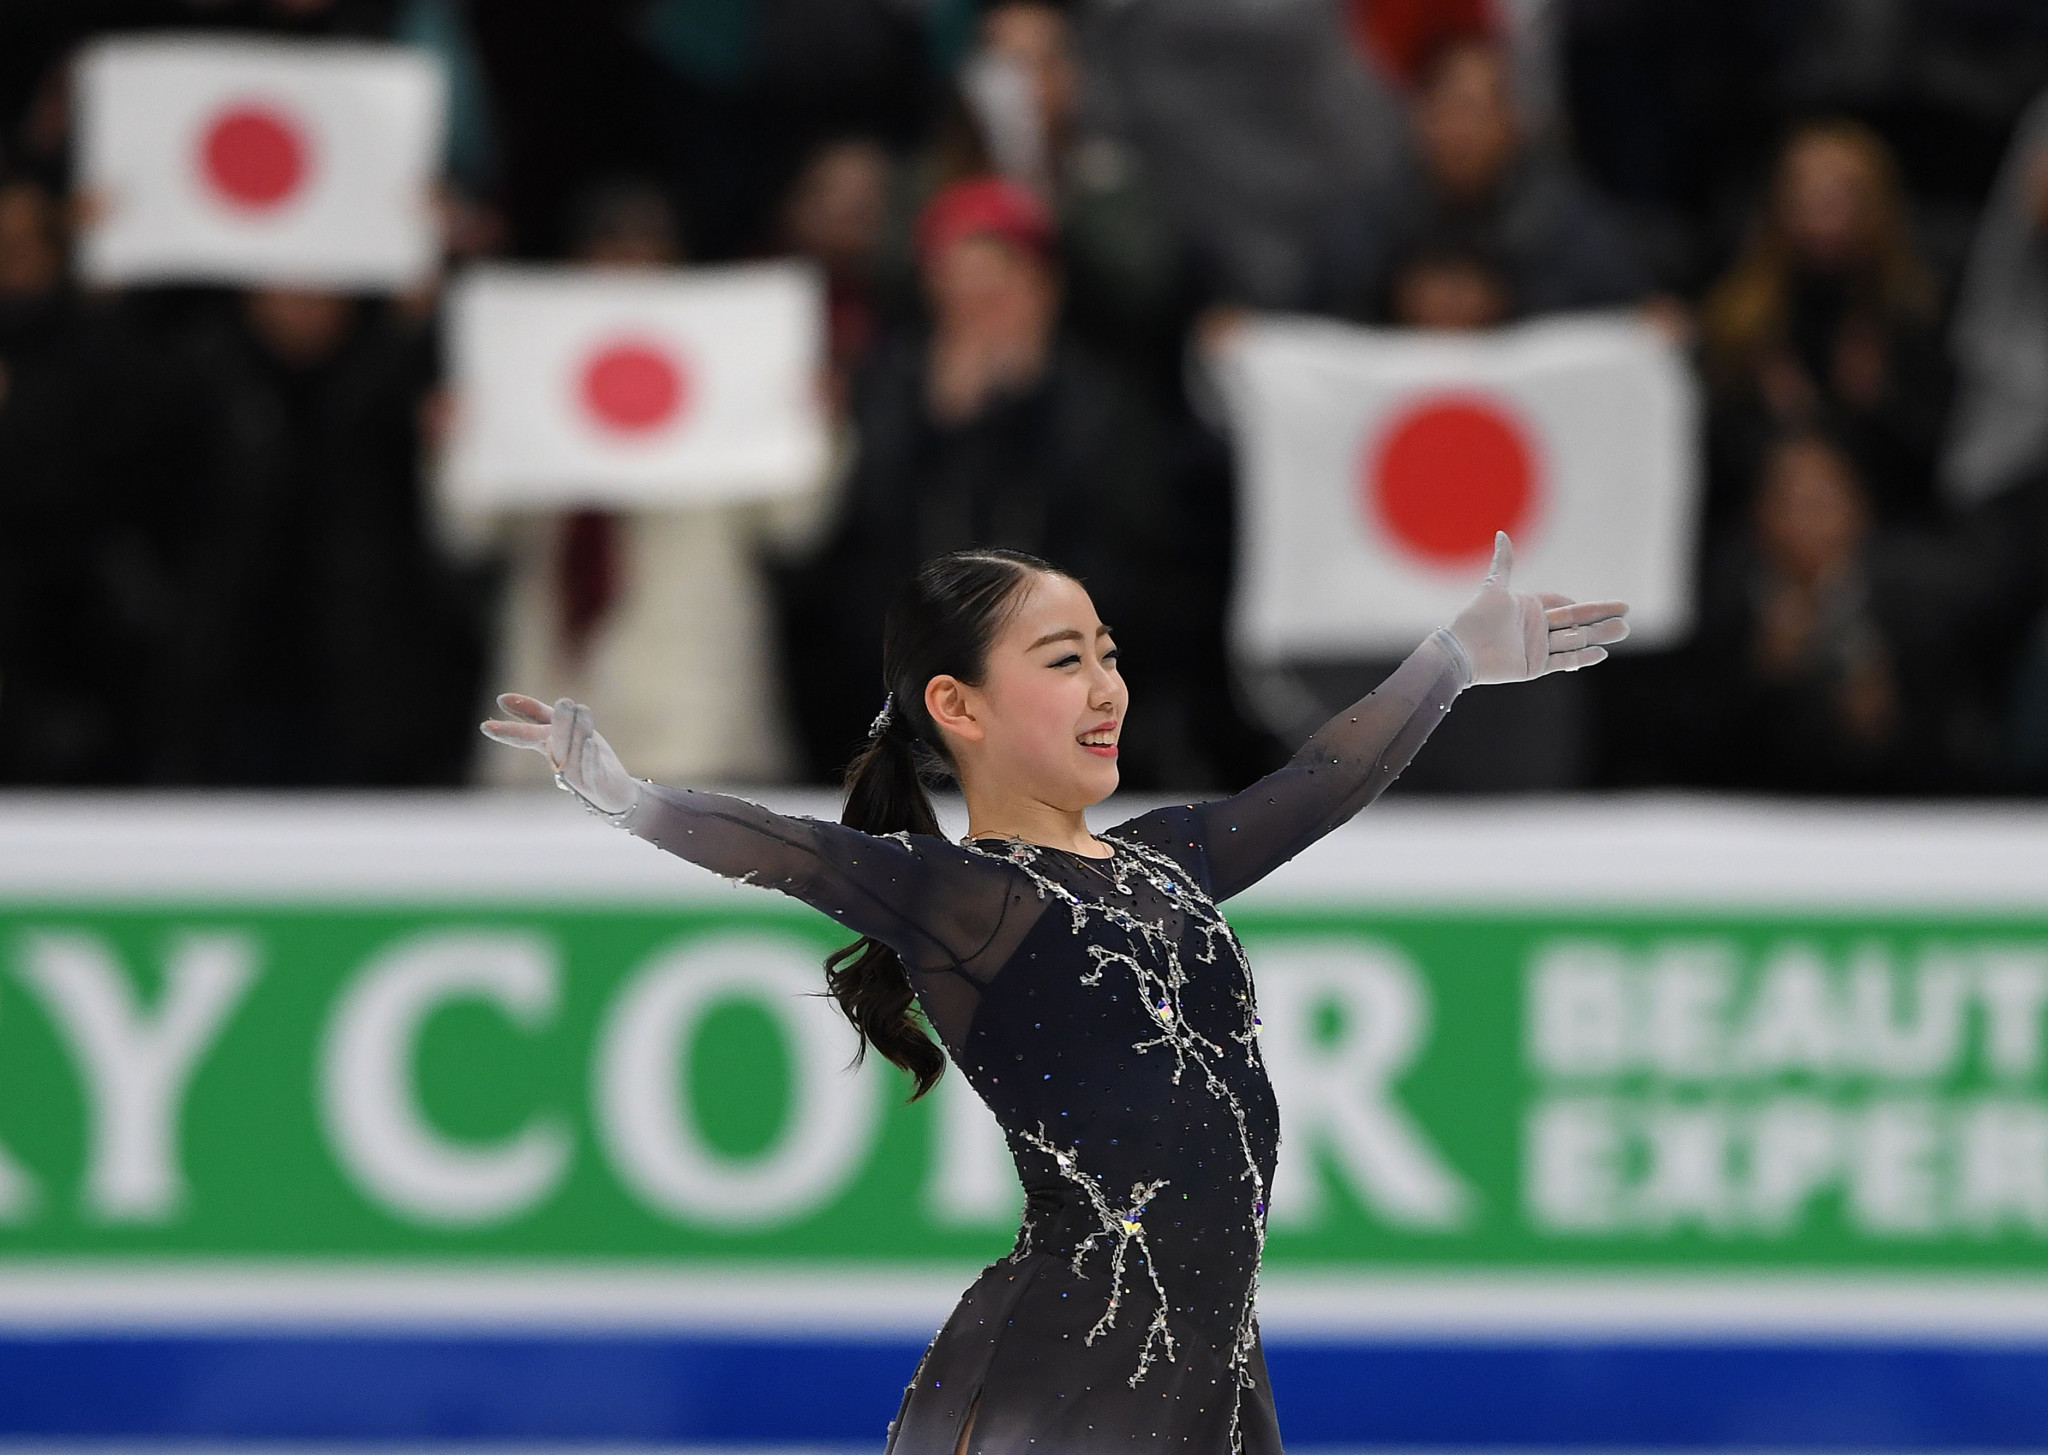 Kihira impresses in free skate to triumph at ISU Four Continents Figure Skating Championships